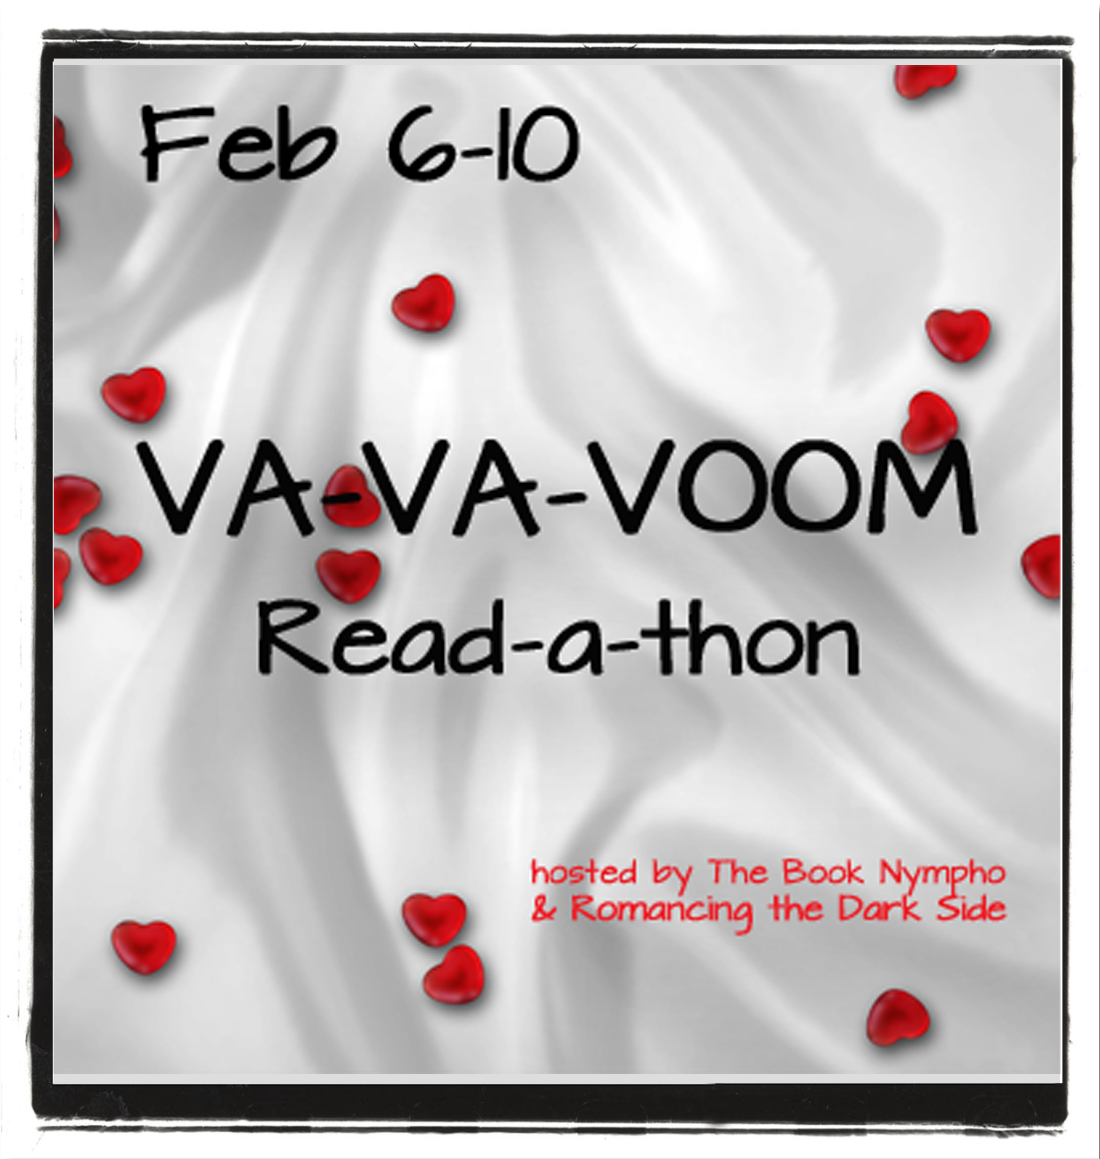 http://thebooknympho.com/2014/01/sign-up-va-va-voom-read-a-thon/